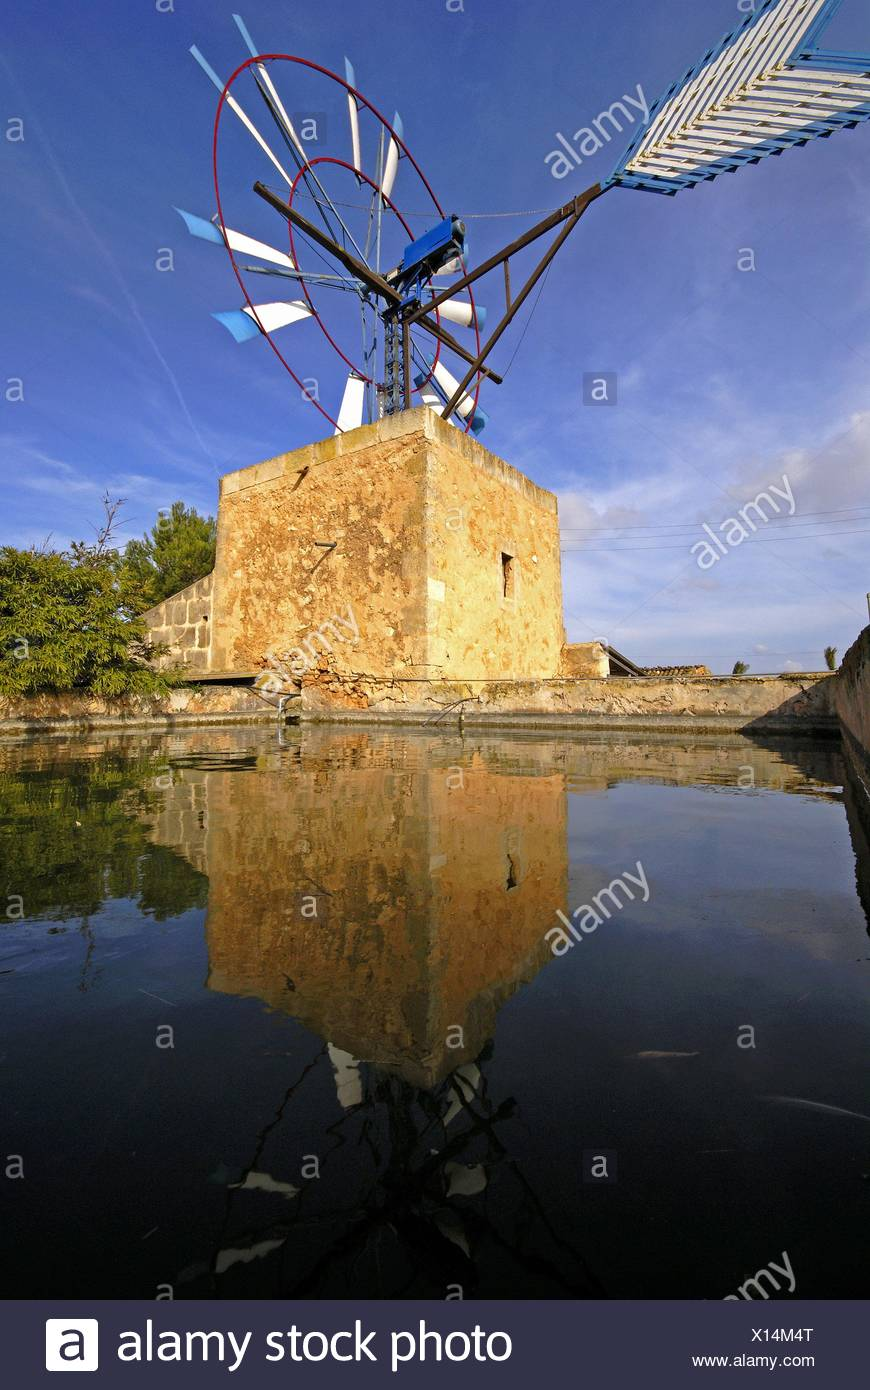 Water extraction mill XIX-XX century Campos Mallorca Balearic Islands Spain. - Stock Image